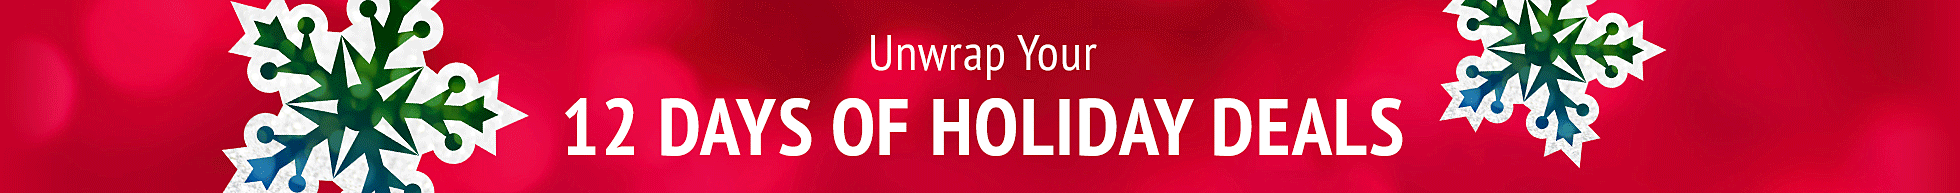 Unwrap Your 12 Days of Holiday Deals